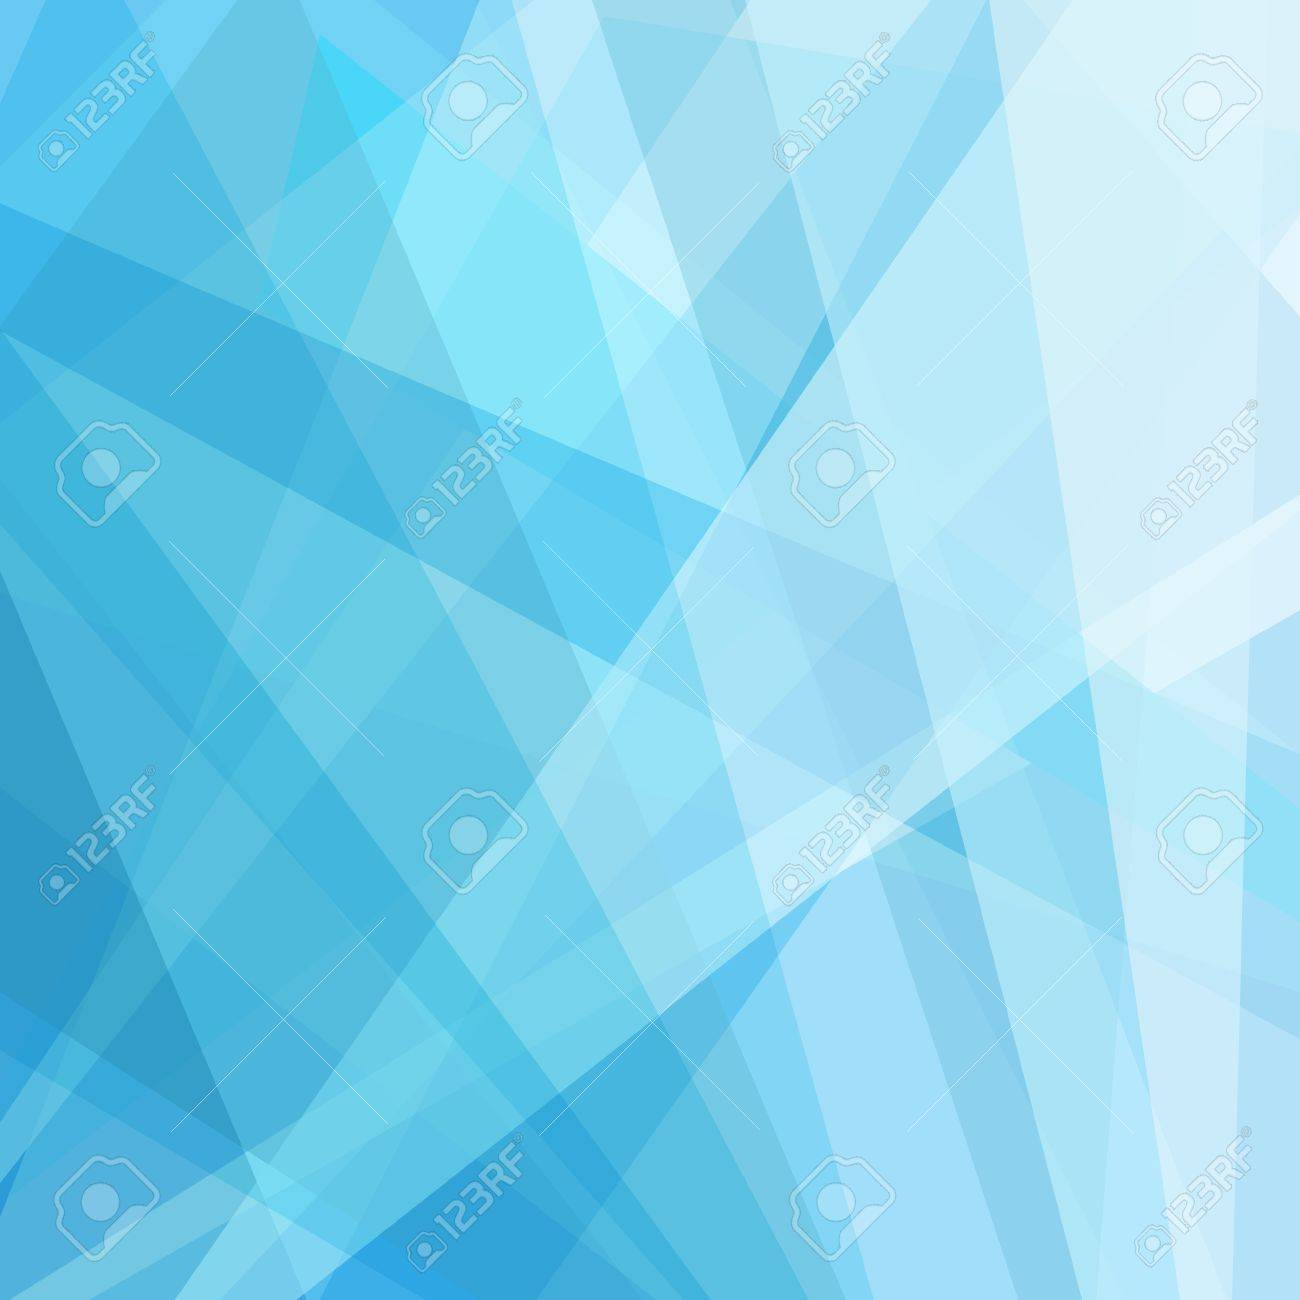 abstract geometric blue and white background, fresh clean lines and soft gradient color in bright shades of sky blue, contemporary or modern art style background, digital layout for website design - 71558777